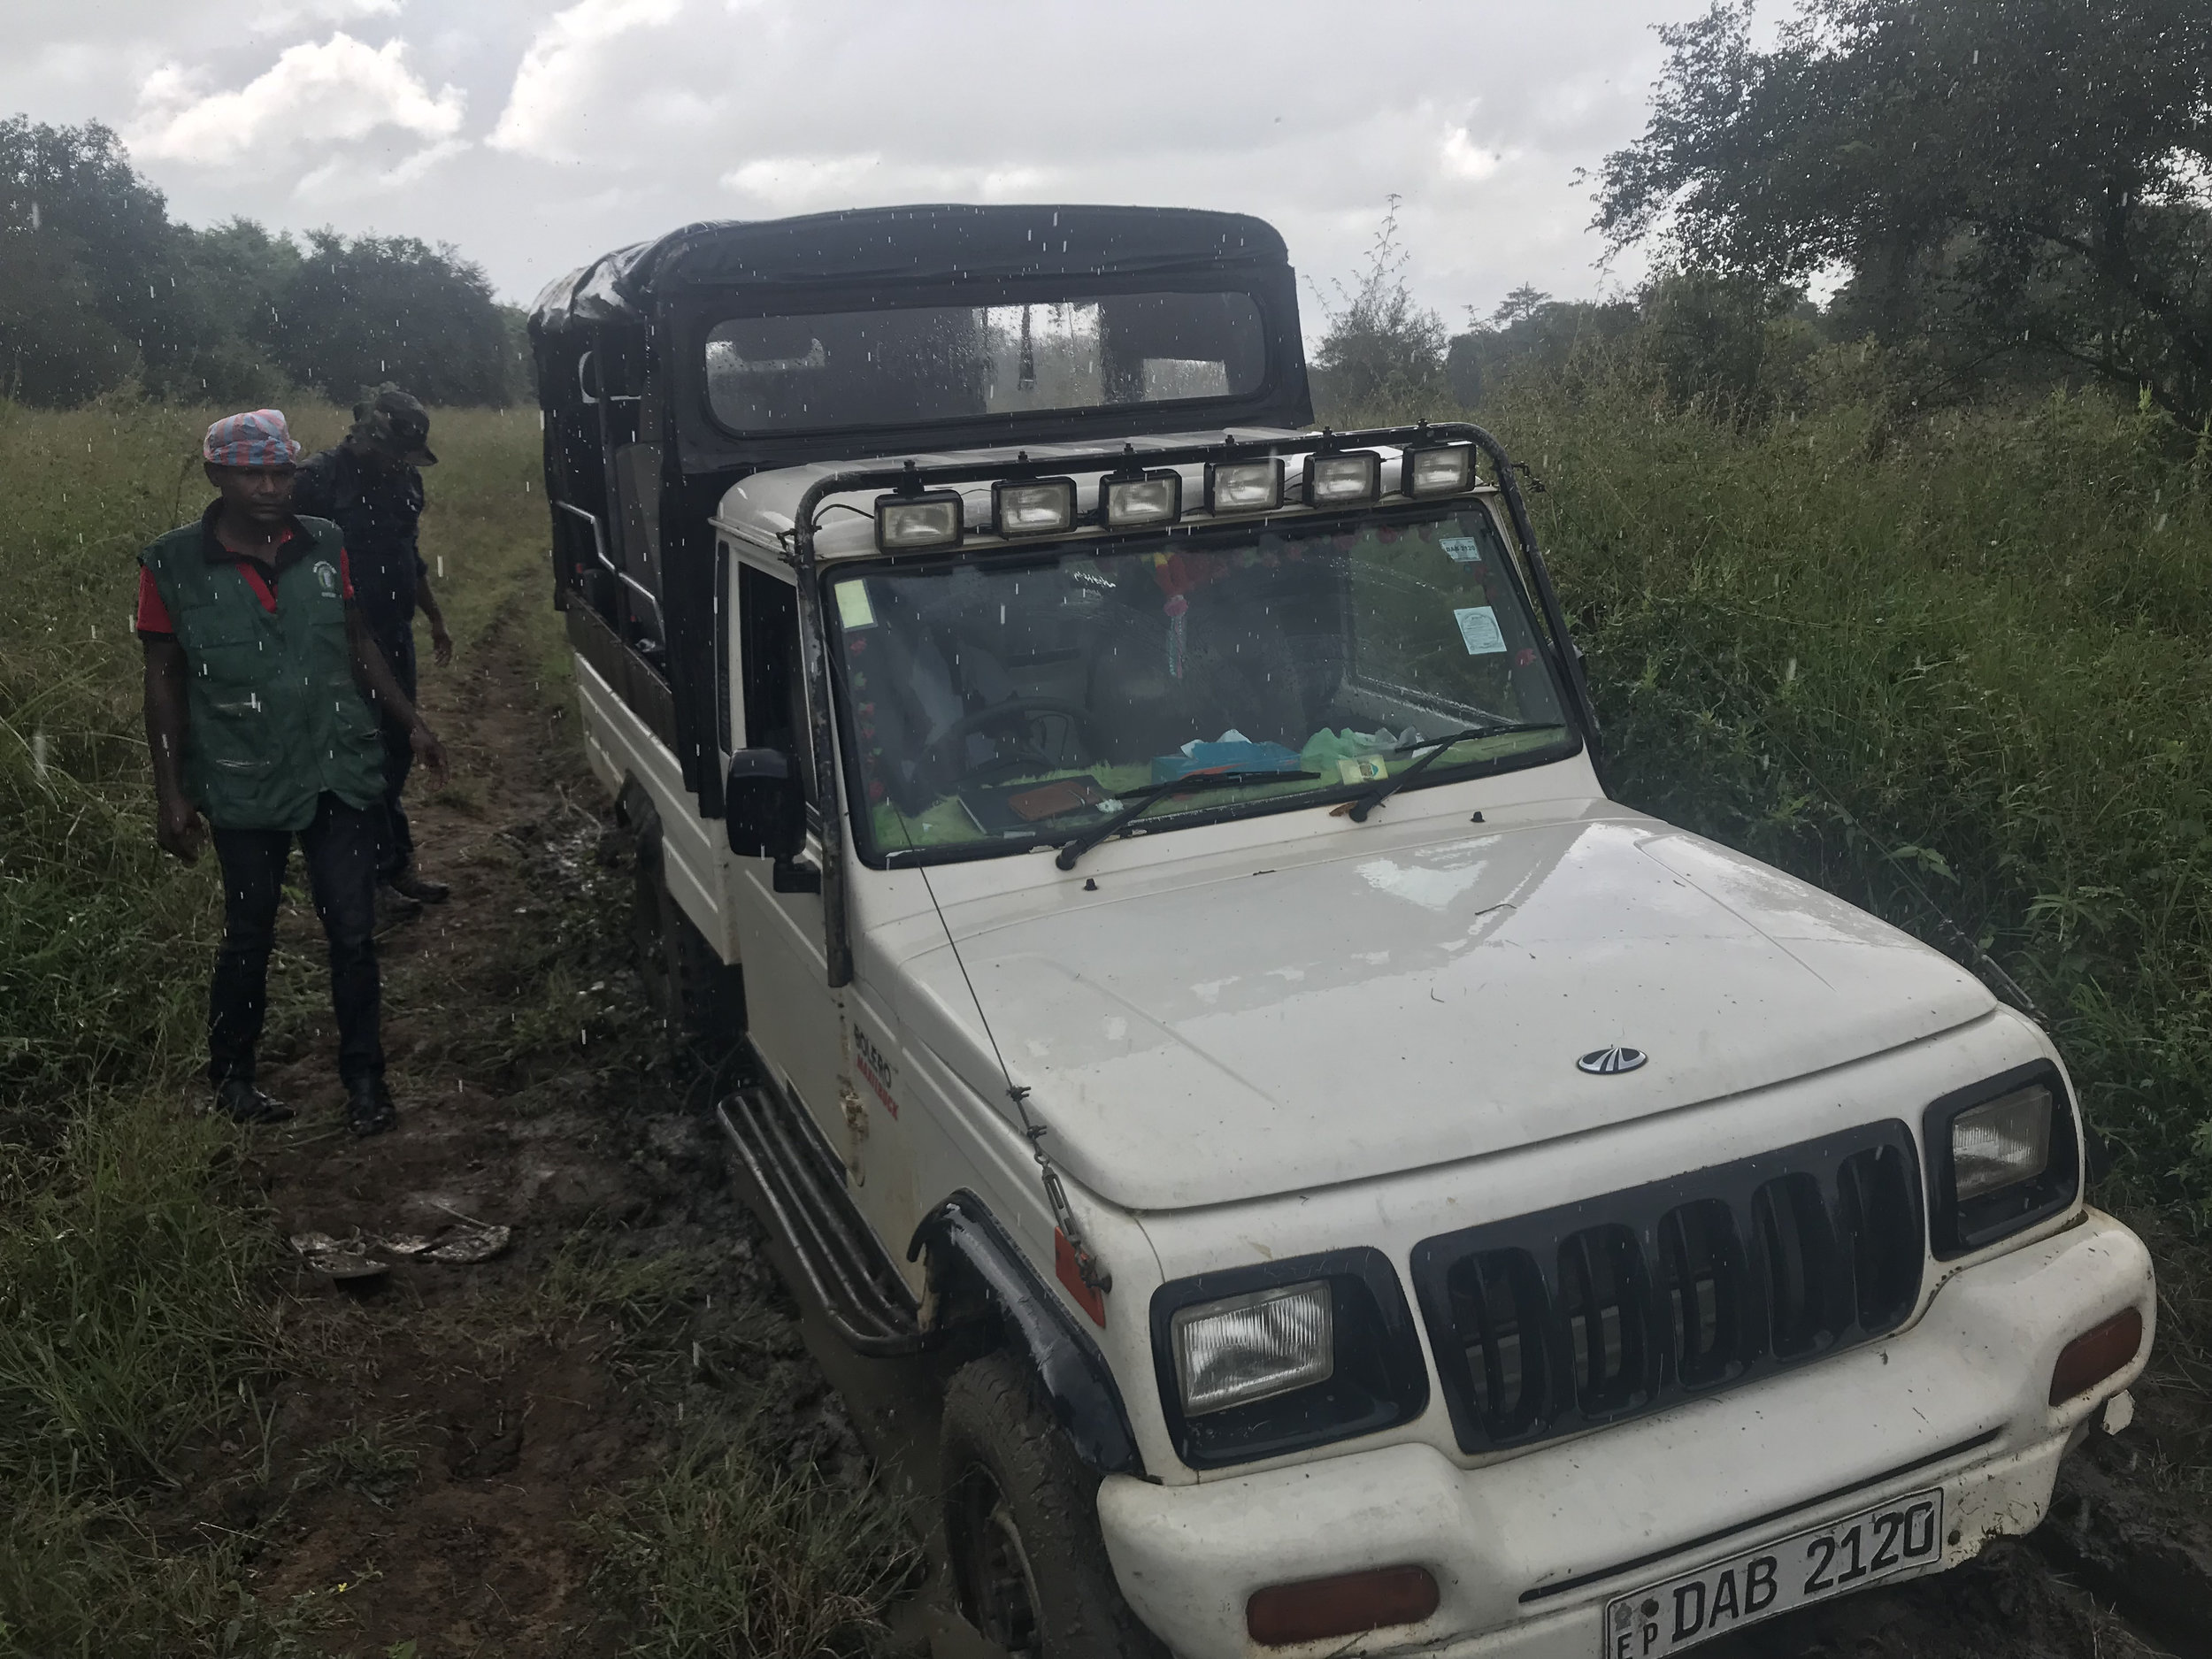 Our stuck vehicle. The rain has just started. Our tracker (Nawa) is worried about his hair getting wet. The solution? Plastic bag on the head.